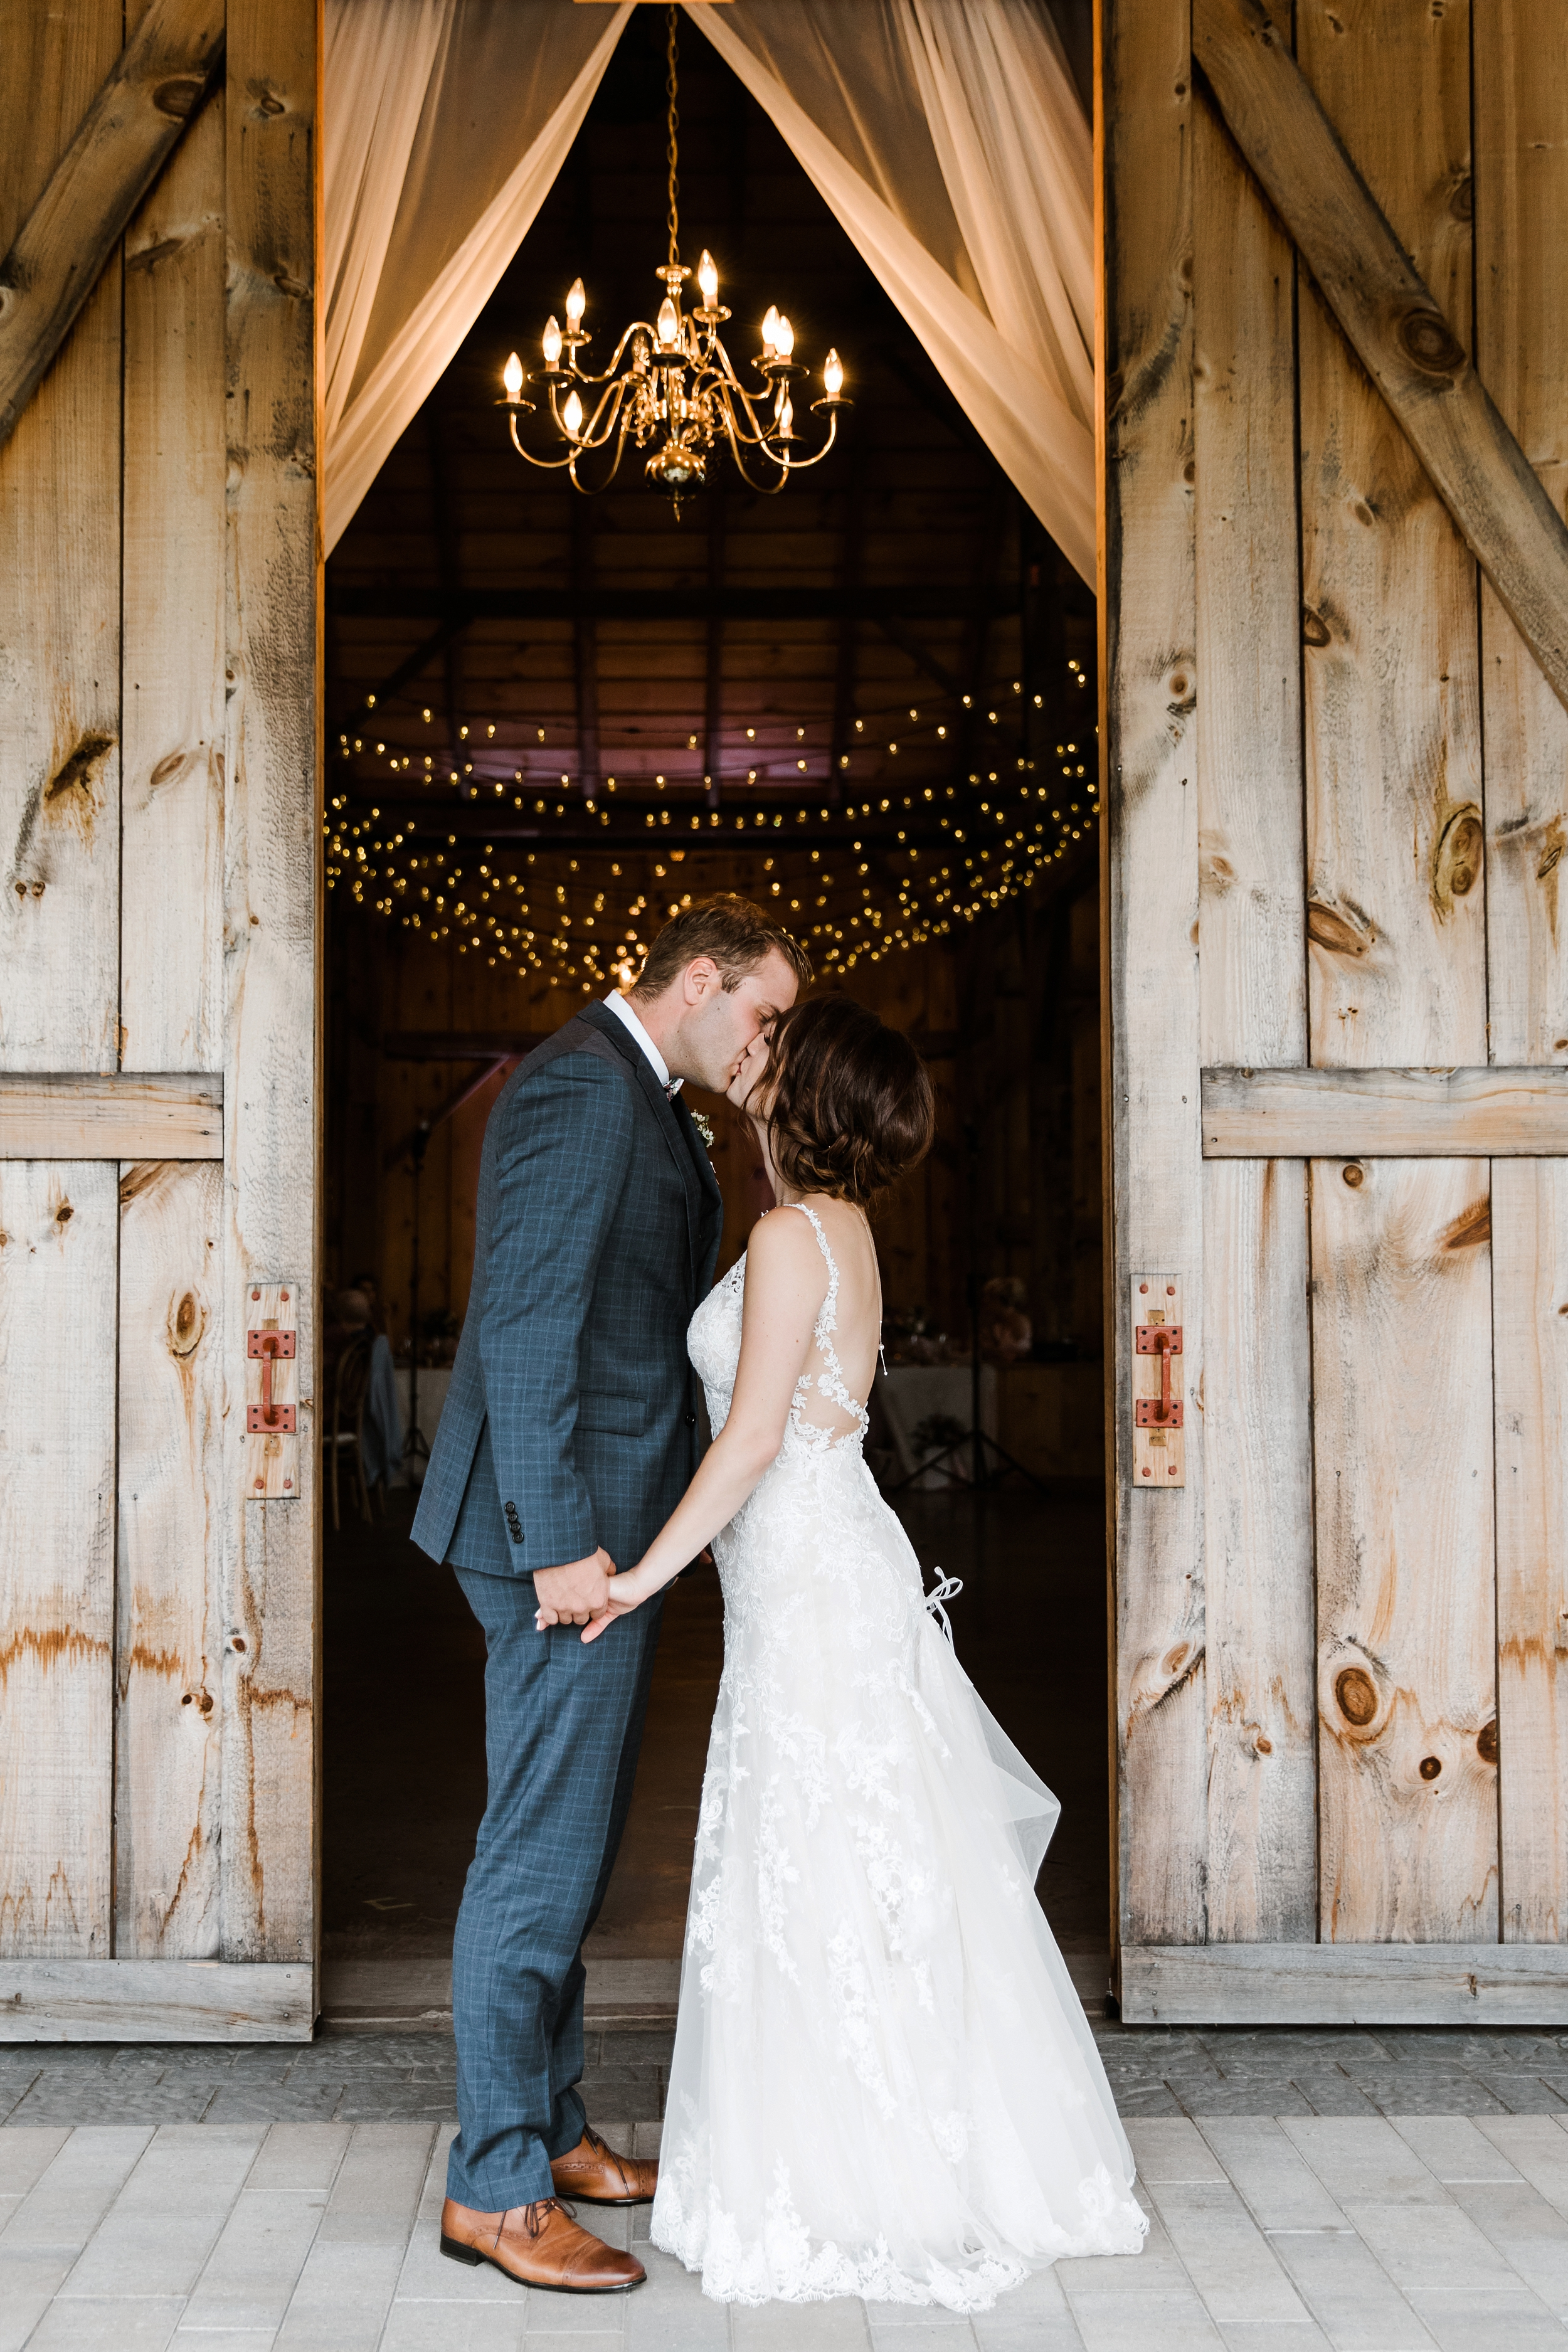 stonewallestates-weddingphotography_0048.jpg